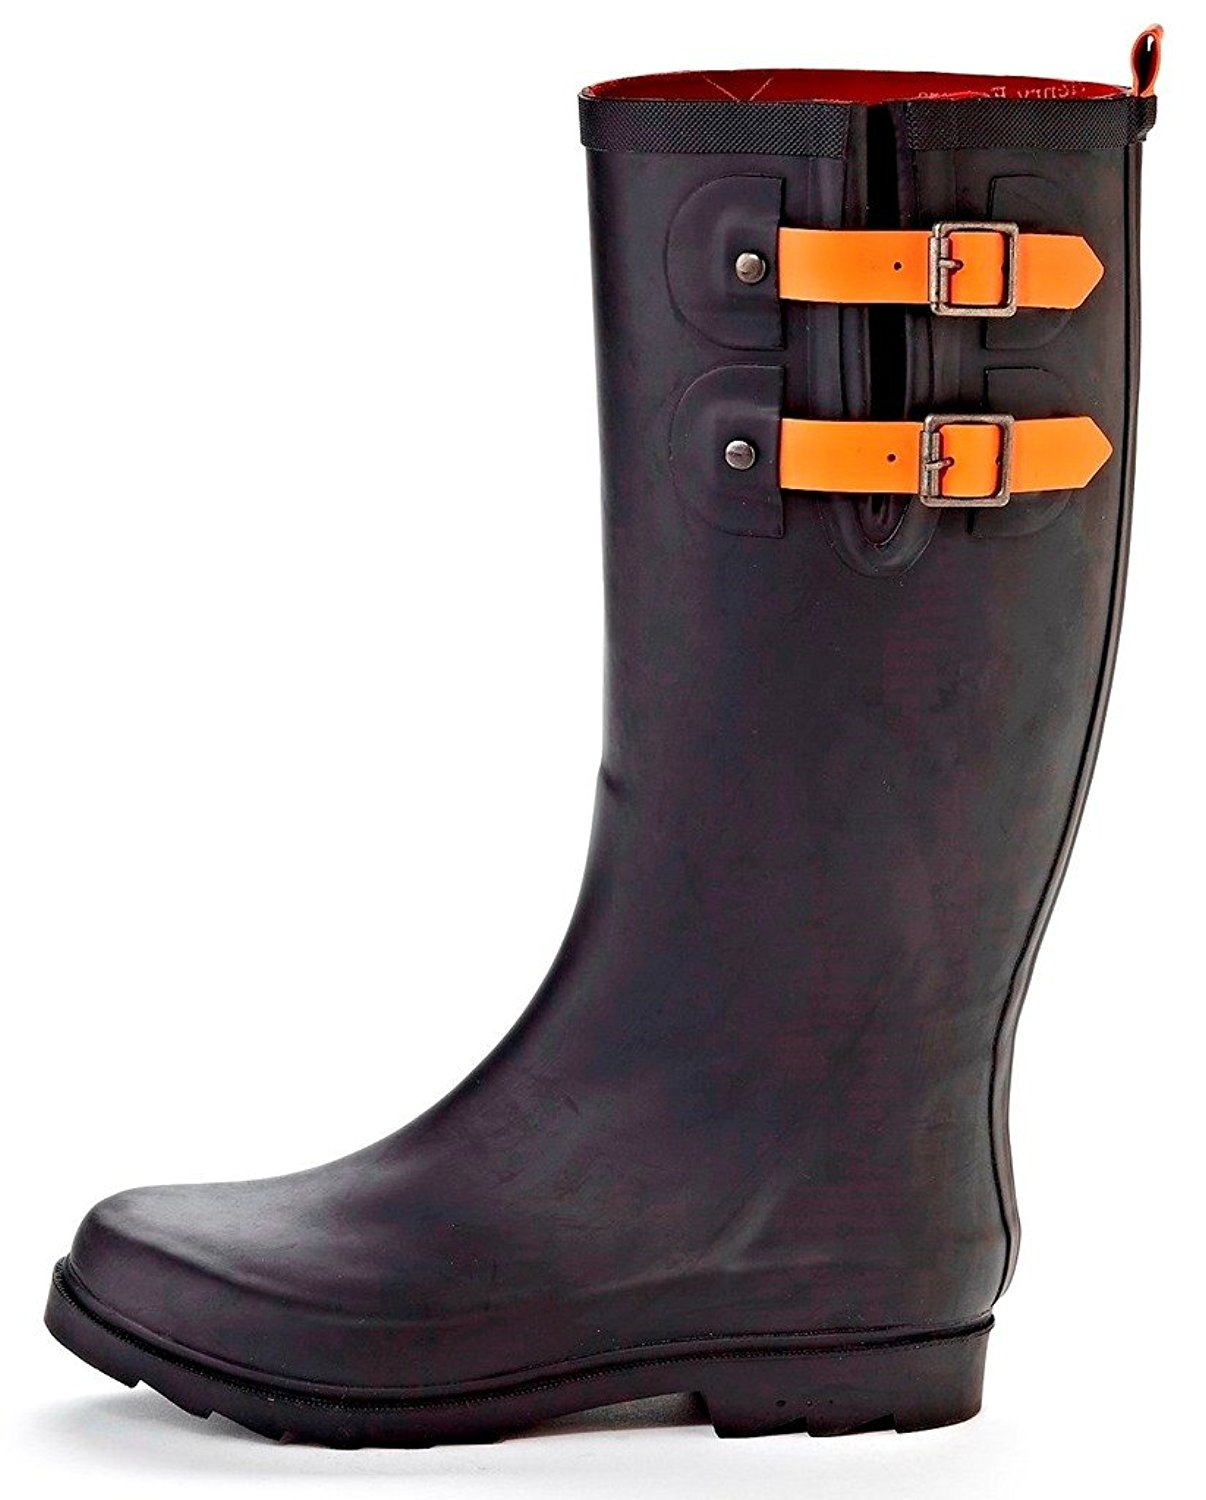 bb612f655b2 Get Quotations · Henry Ferrera Black Stone Women's Water-Resistant Rain  Boots